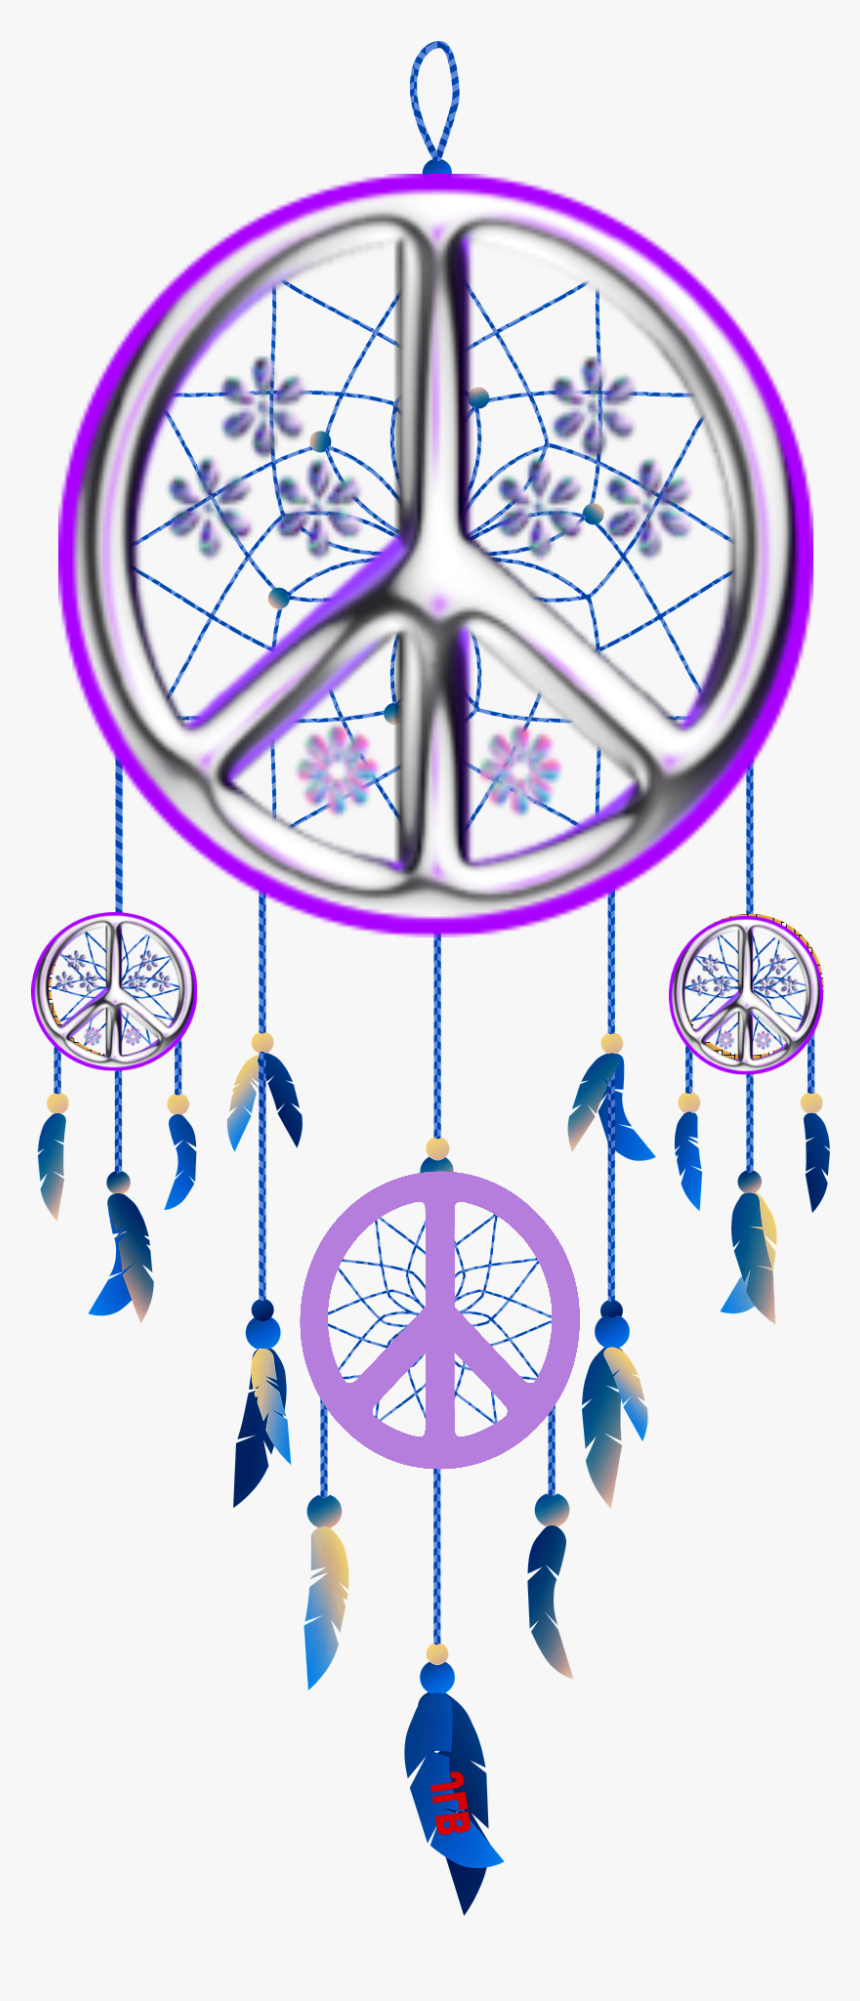 Symbol Dream Catcher Meaning, HD Png Download, Free Download